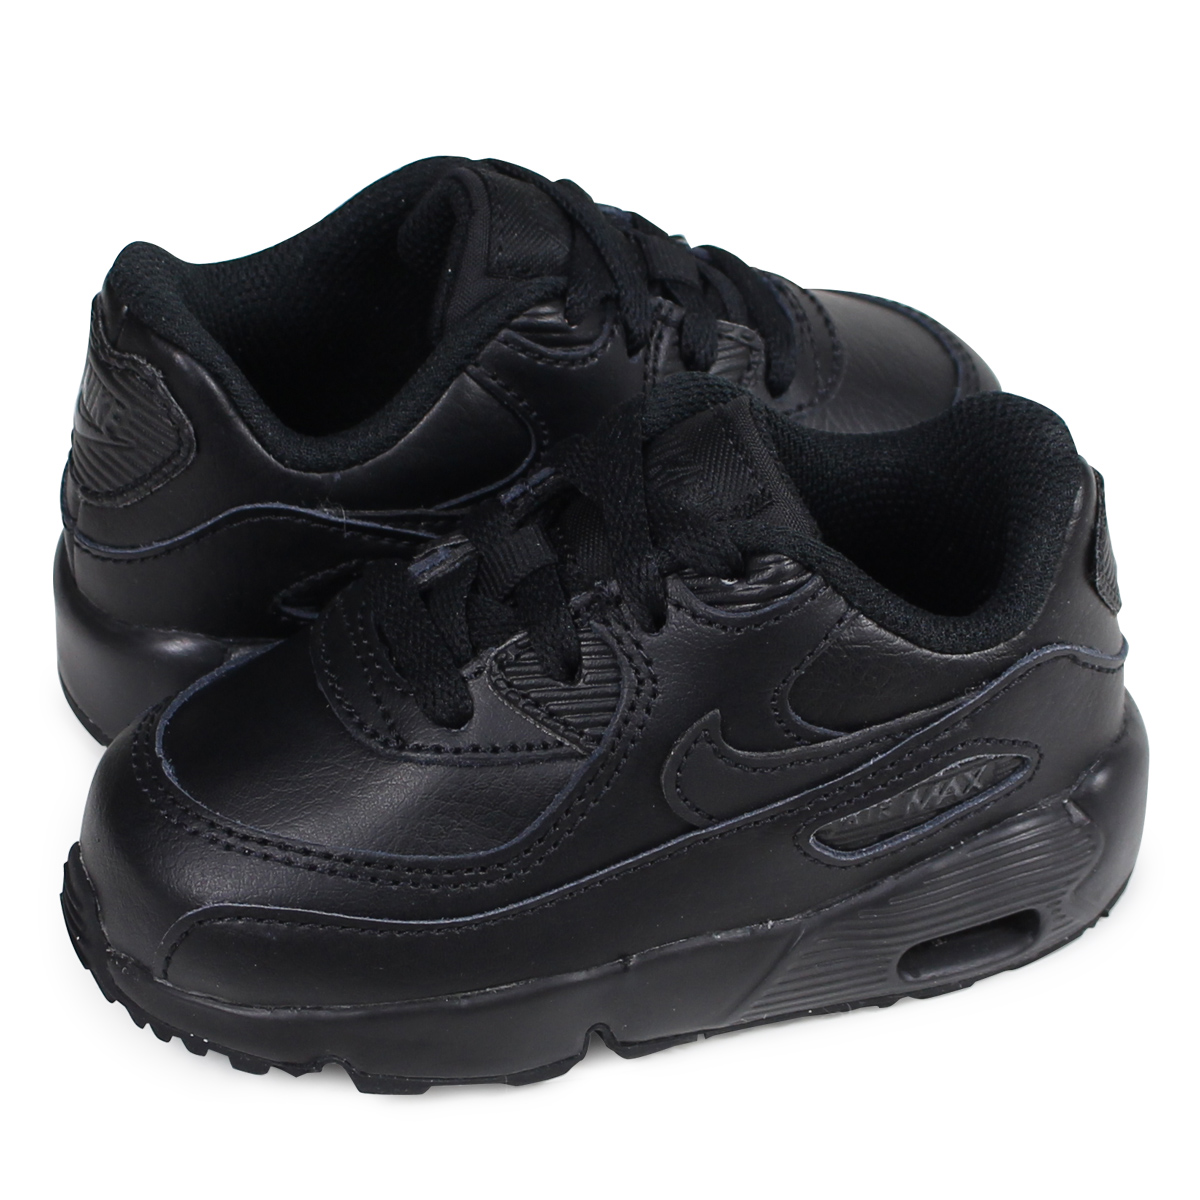 dff3f336bafd Whats up Sports  NIKE AIR MAX 90 LEATHER TD Kie Ney AMAX 90 baby ...